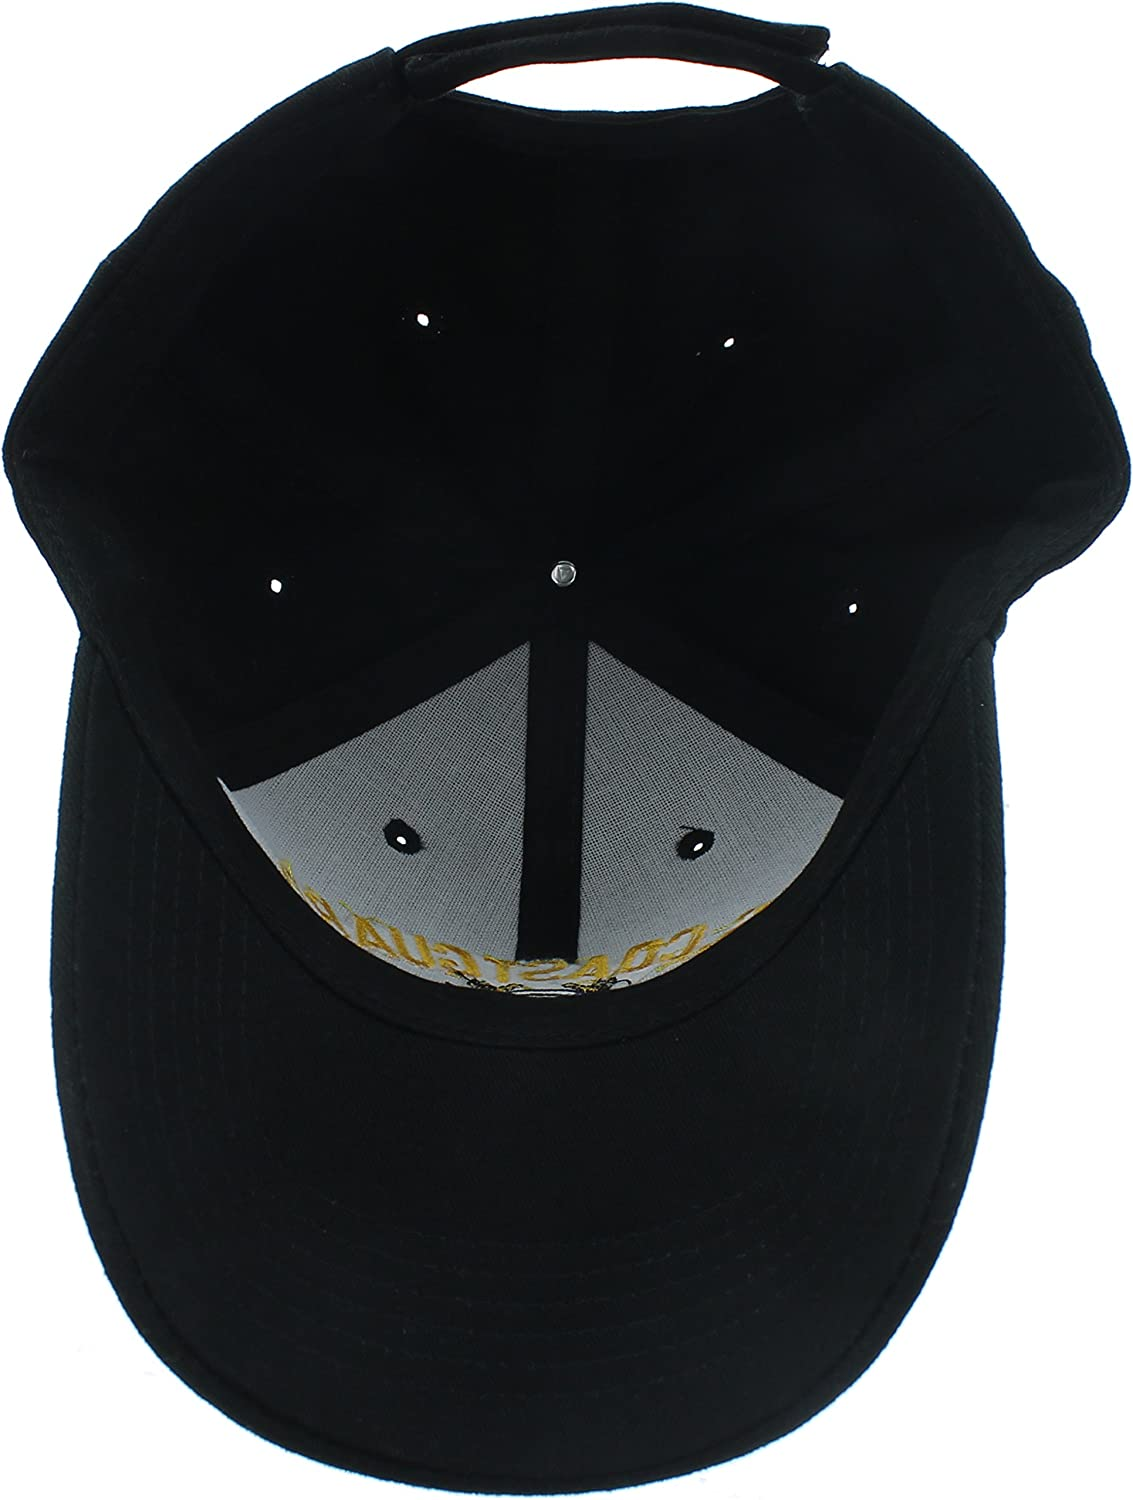 U.S NEW COAST GUARD CAP HAT ALL BLACK